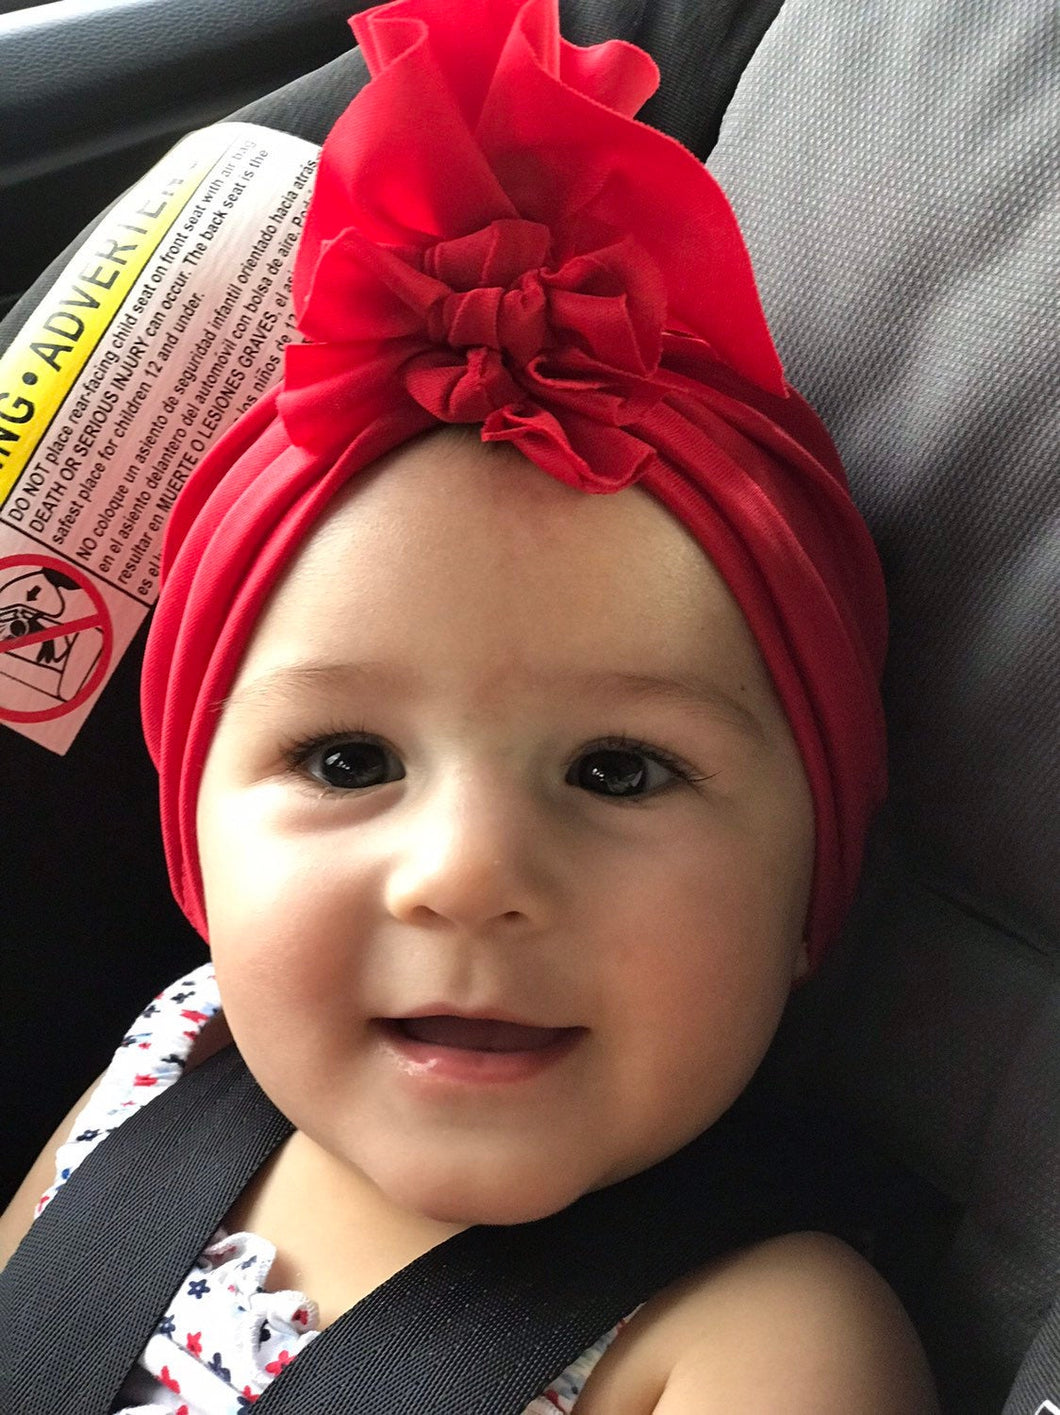 Headwrap Ruffles+Knots Scarlet Red|Baby Turban|Adult Turban|Top Knot Turban| Baby Hat|Kids Turbans|Toddler Turban|Bun Turban|Newborn Turban